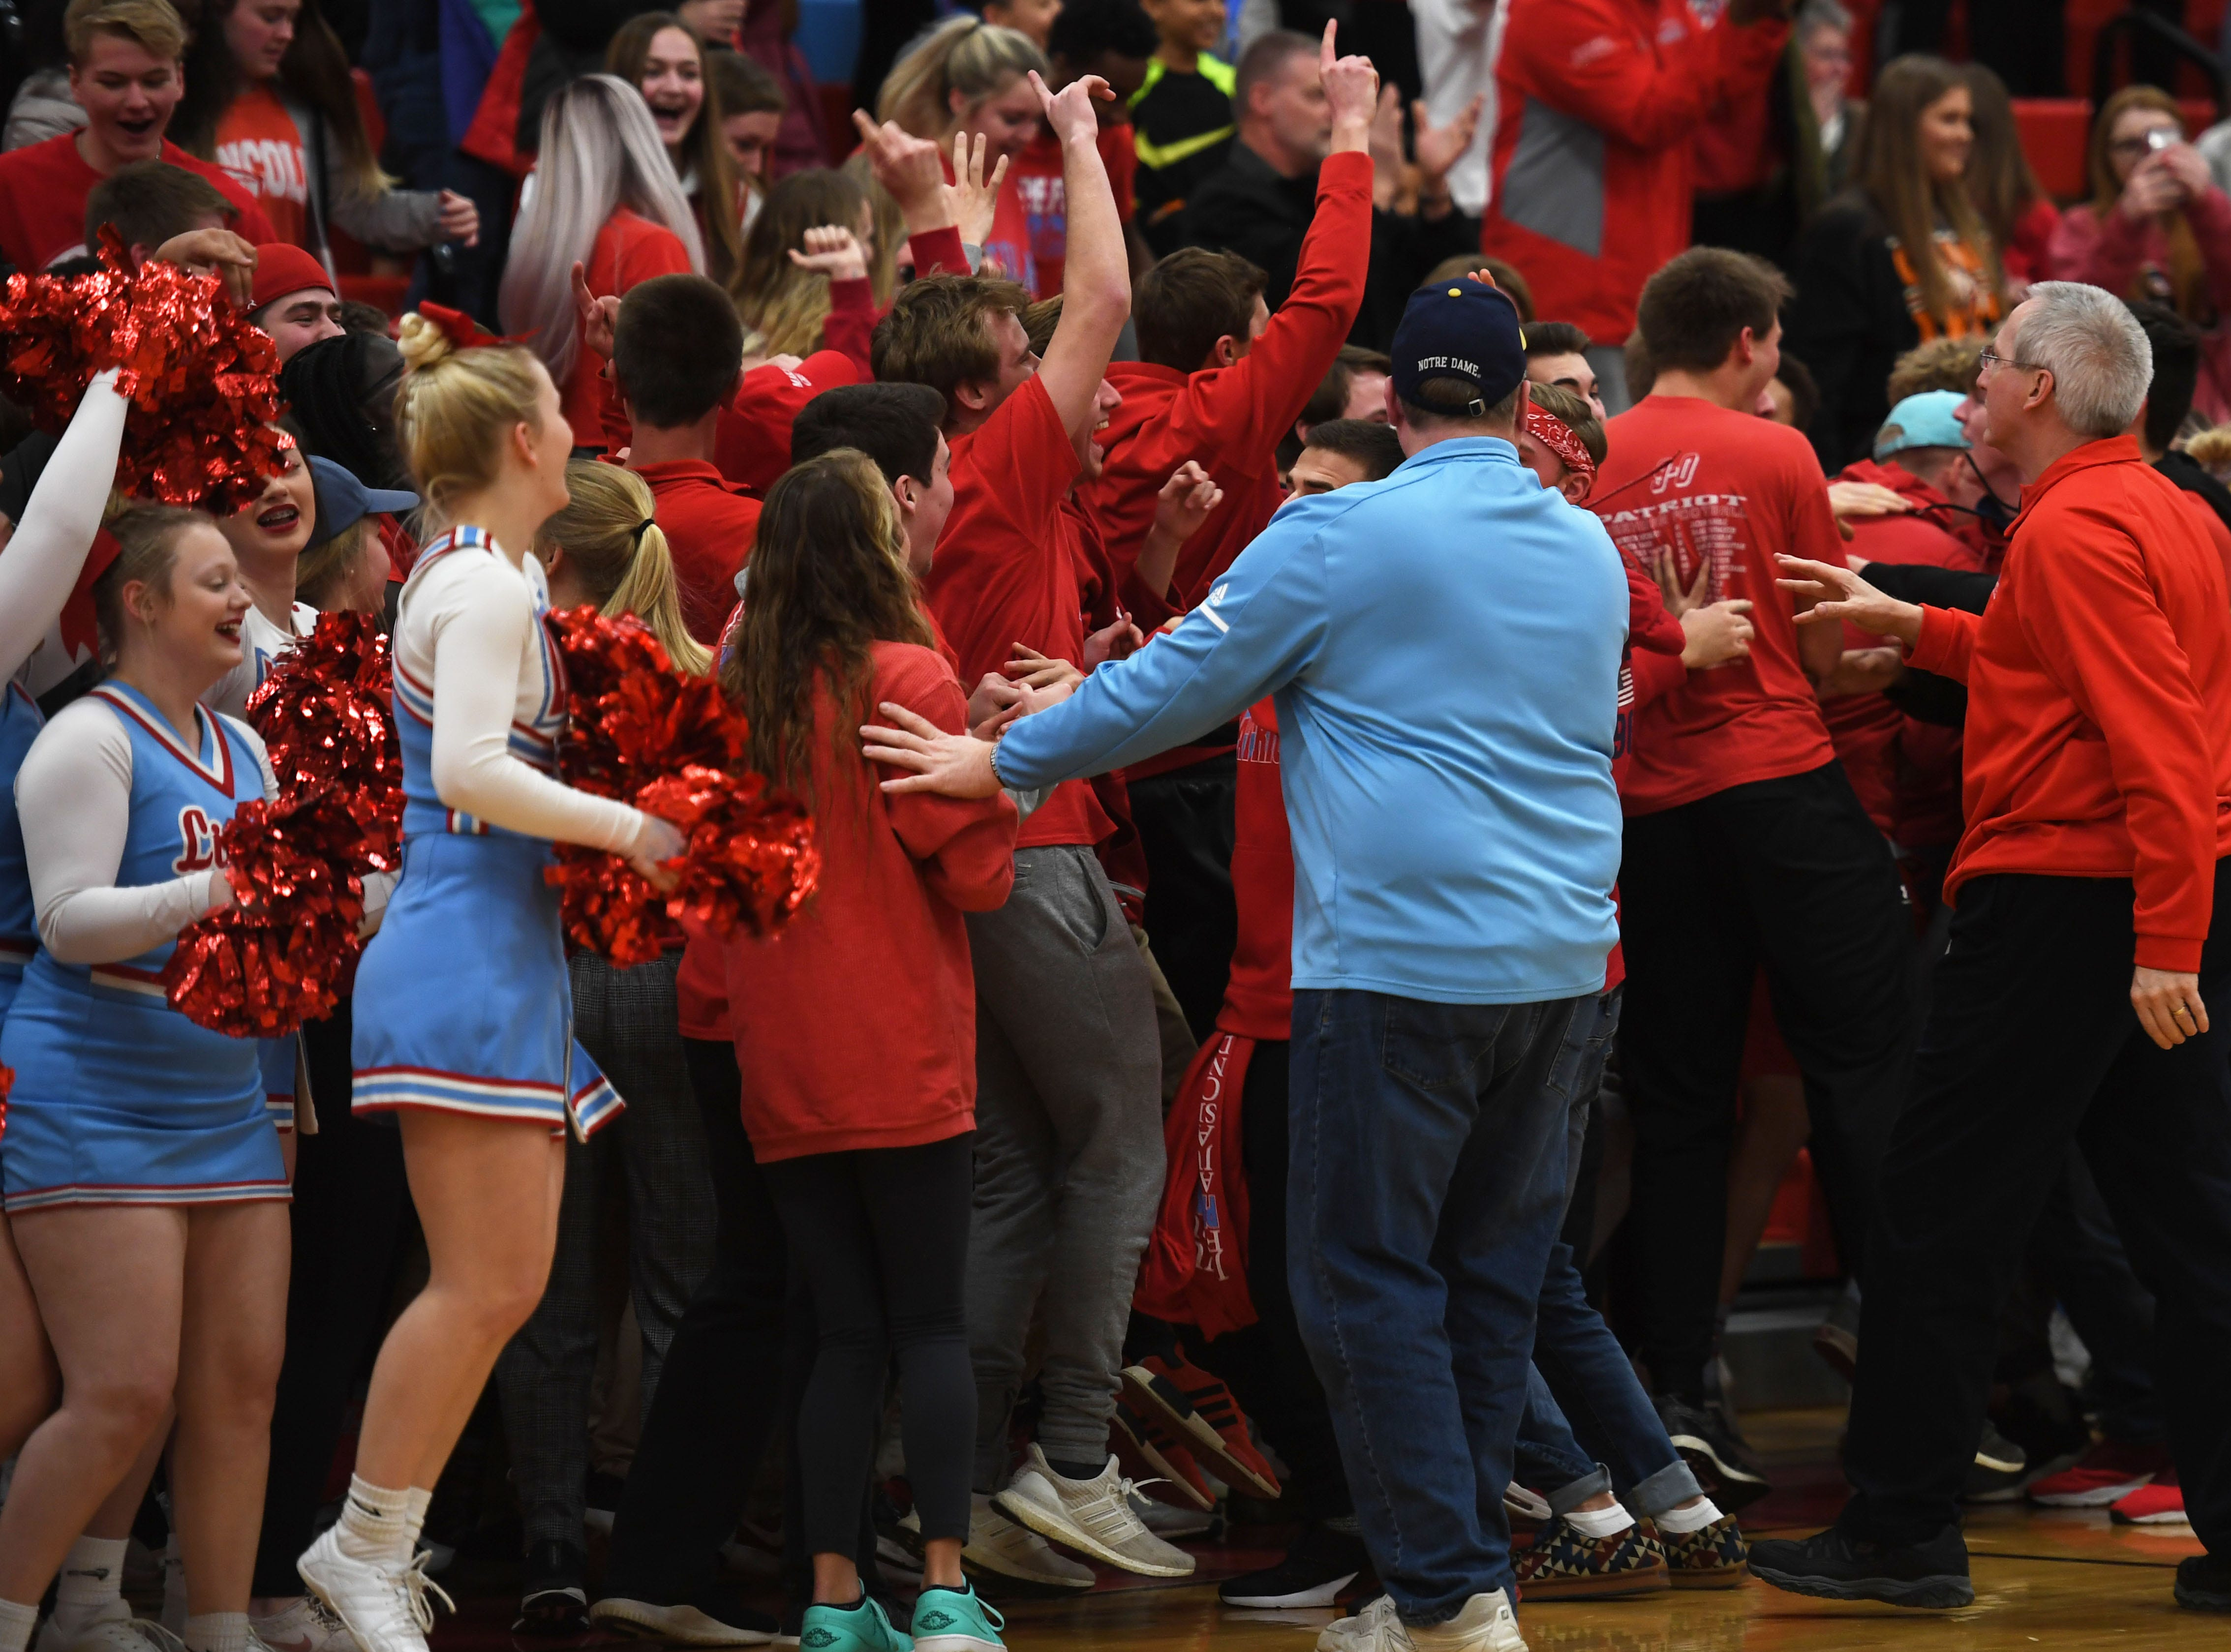 Lincoln teachers and staff attempt to keep the student section from rushing the court after Emma Osmundson scores three points in the last seconds of the game against Washington Thursday, Jan. 24, at Lincoln. Lincoln won 63-62 against Washington.